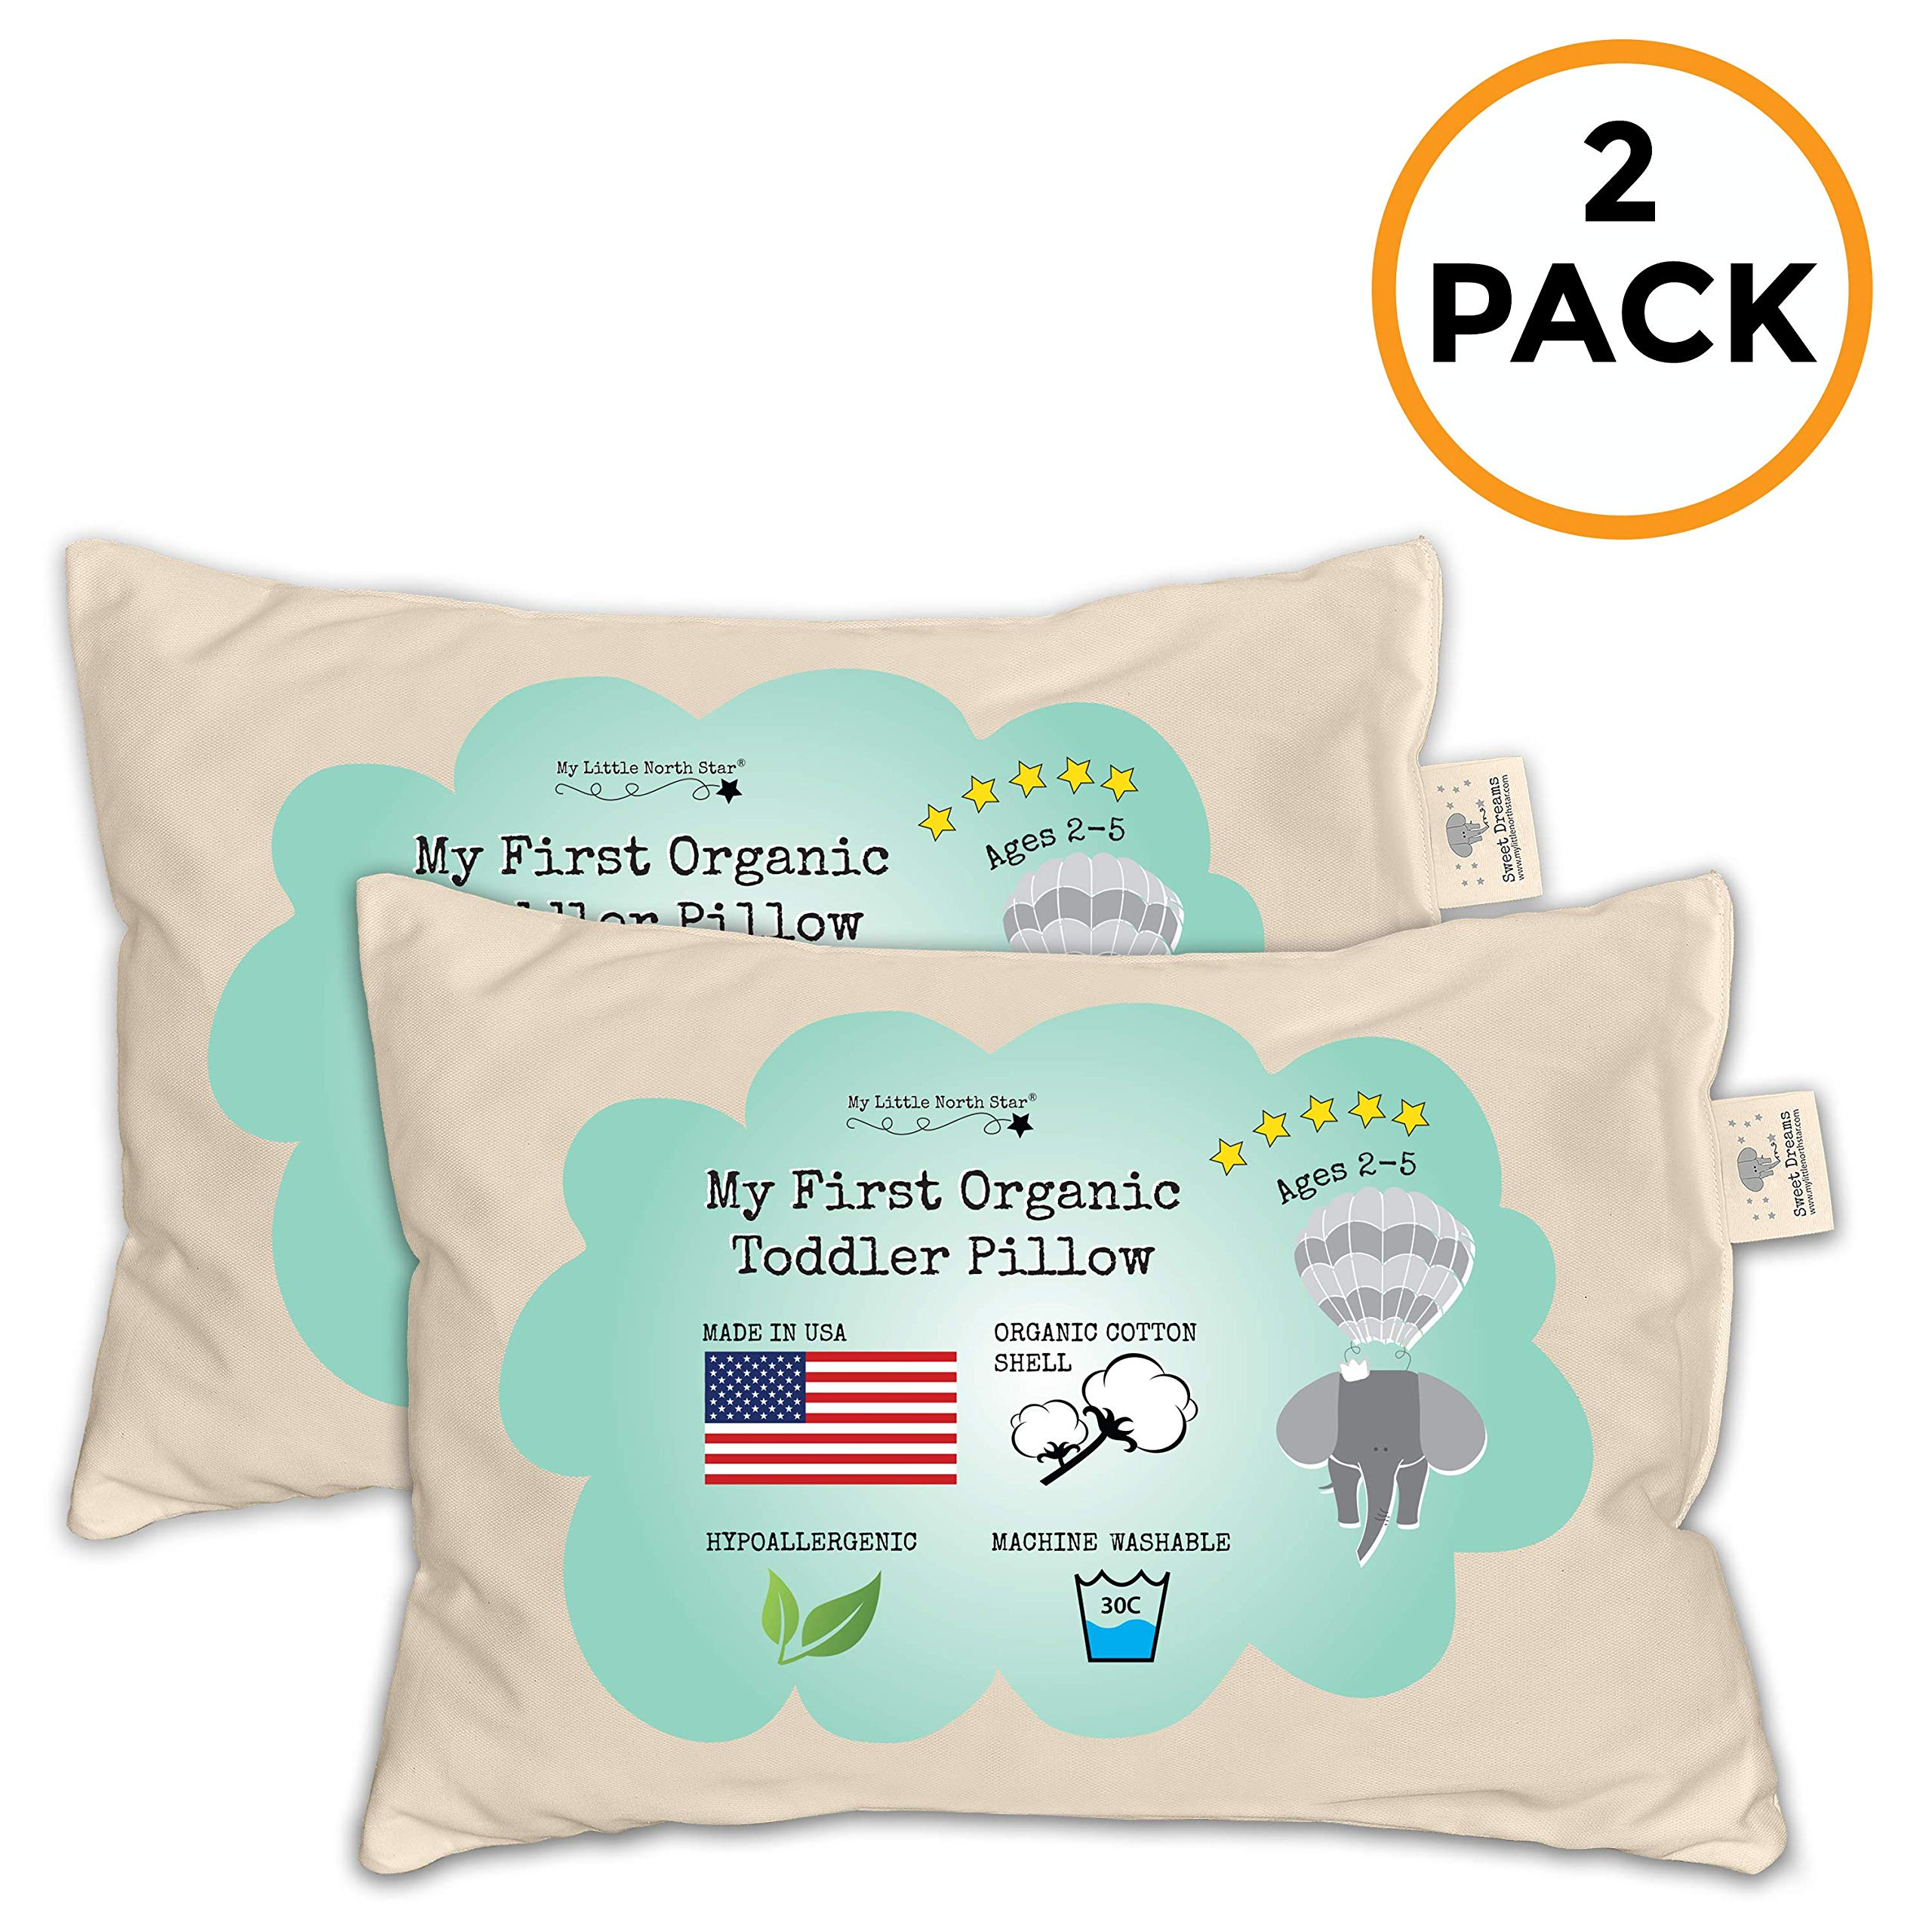 Toddler Pillow - Organic Cotton Made in USA - Hypoallergenic Washable Unisex Kids Pillow - 13X18-2 Pack